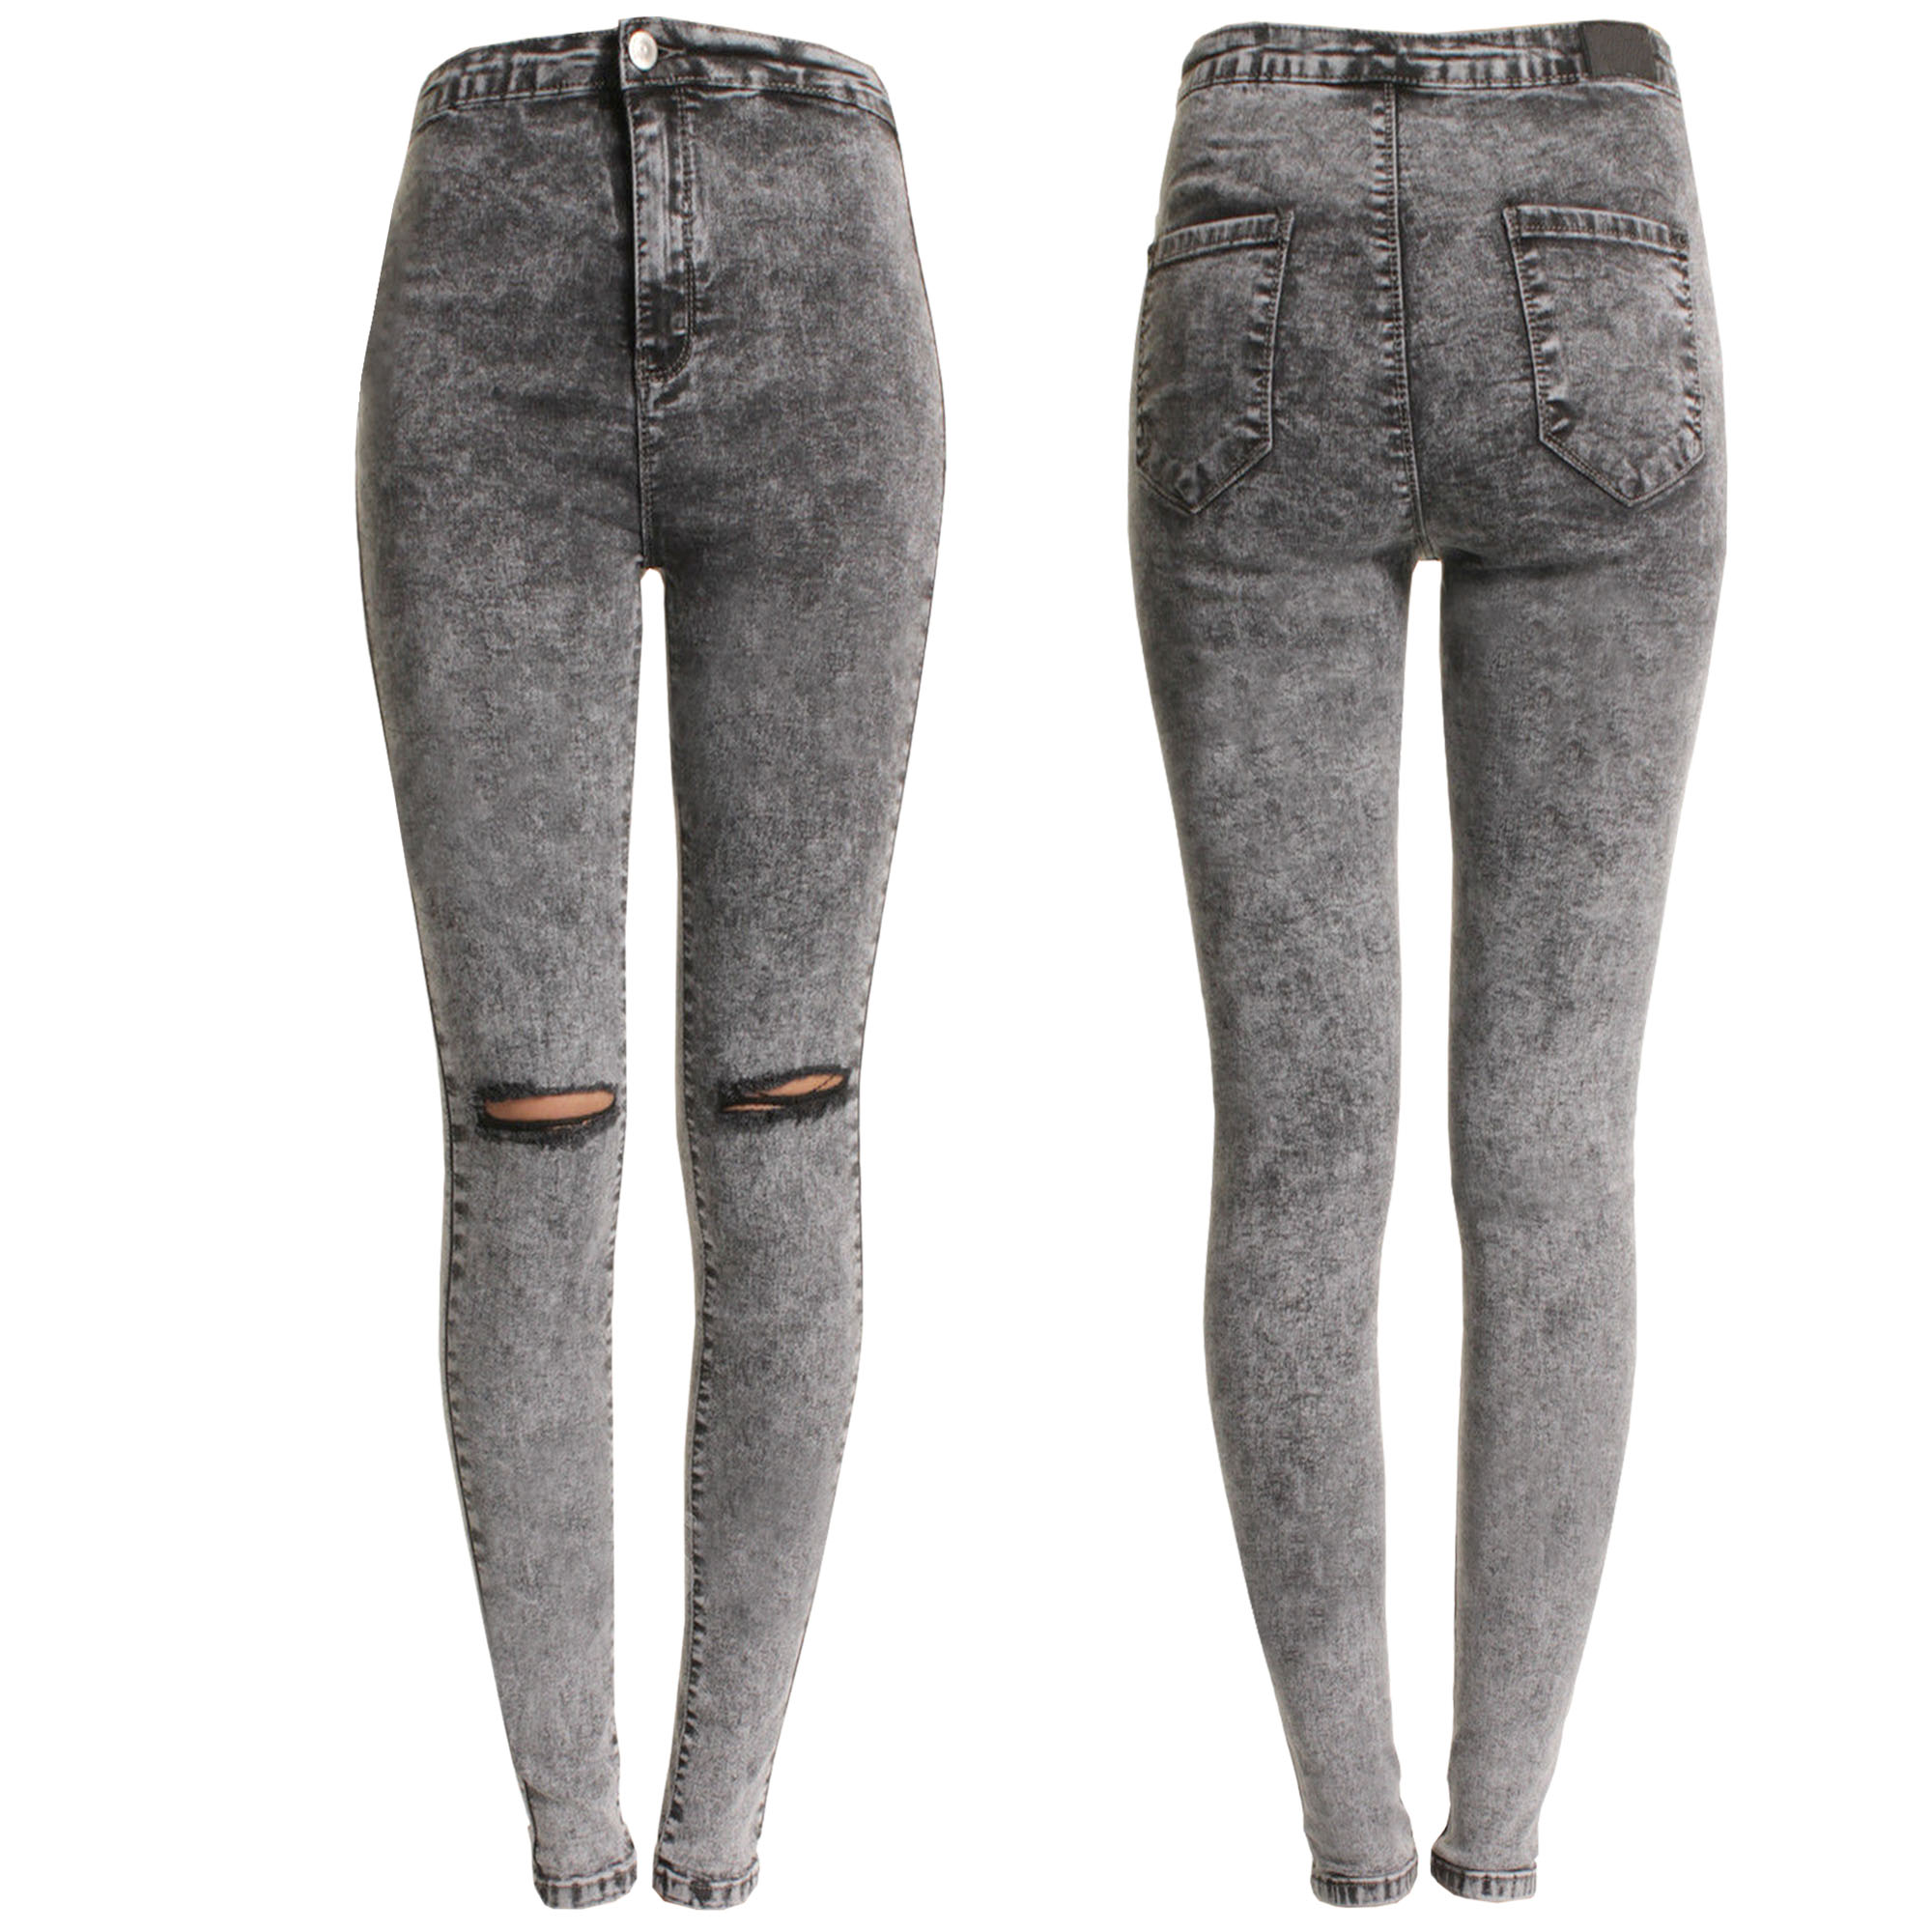 NEW LADIES GREY ACID WASH RIPPED KNEE SKINNY JEANS WOMENS HIGH ...